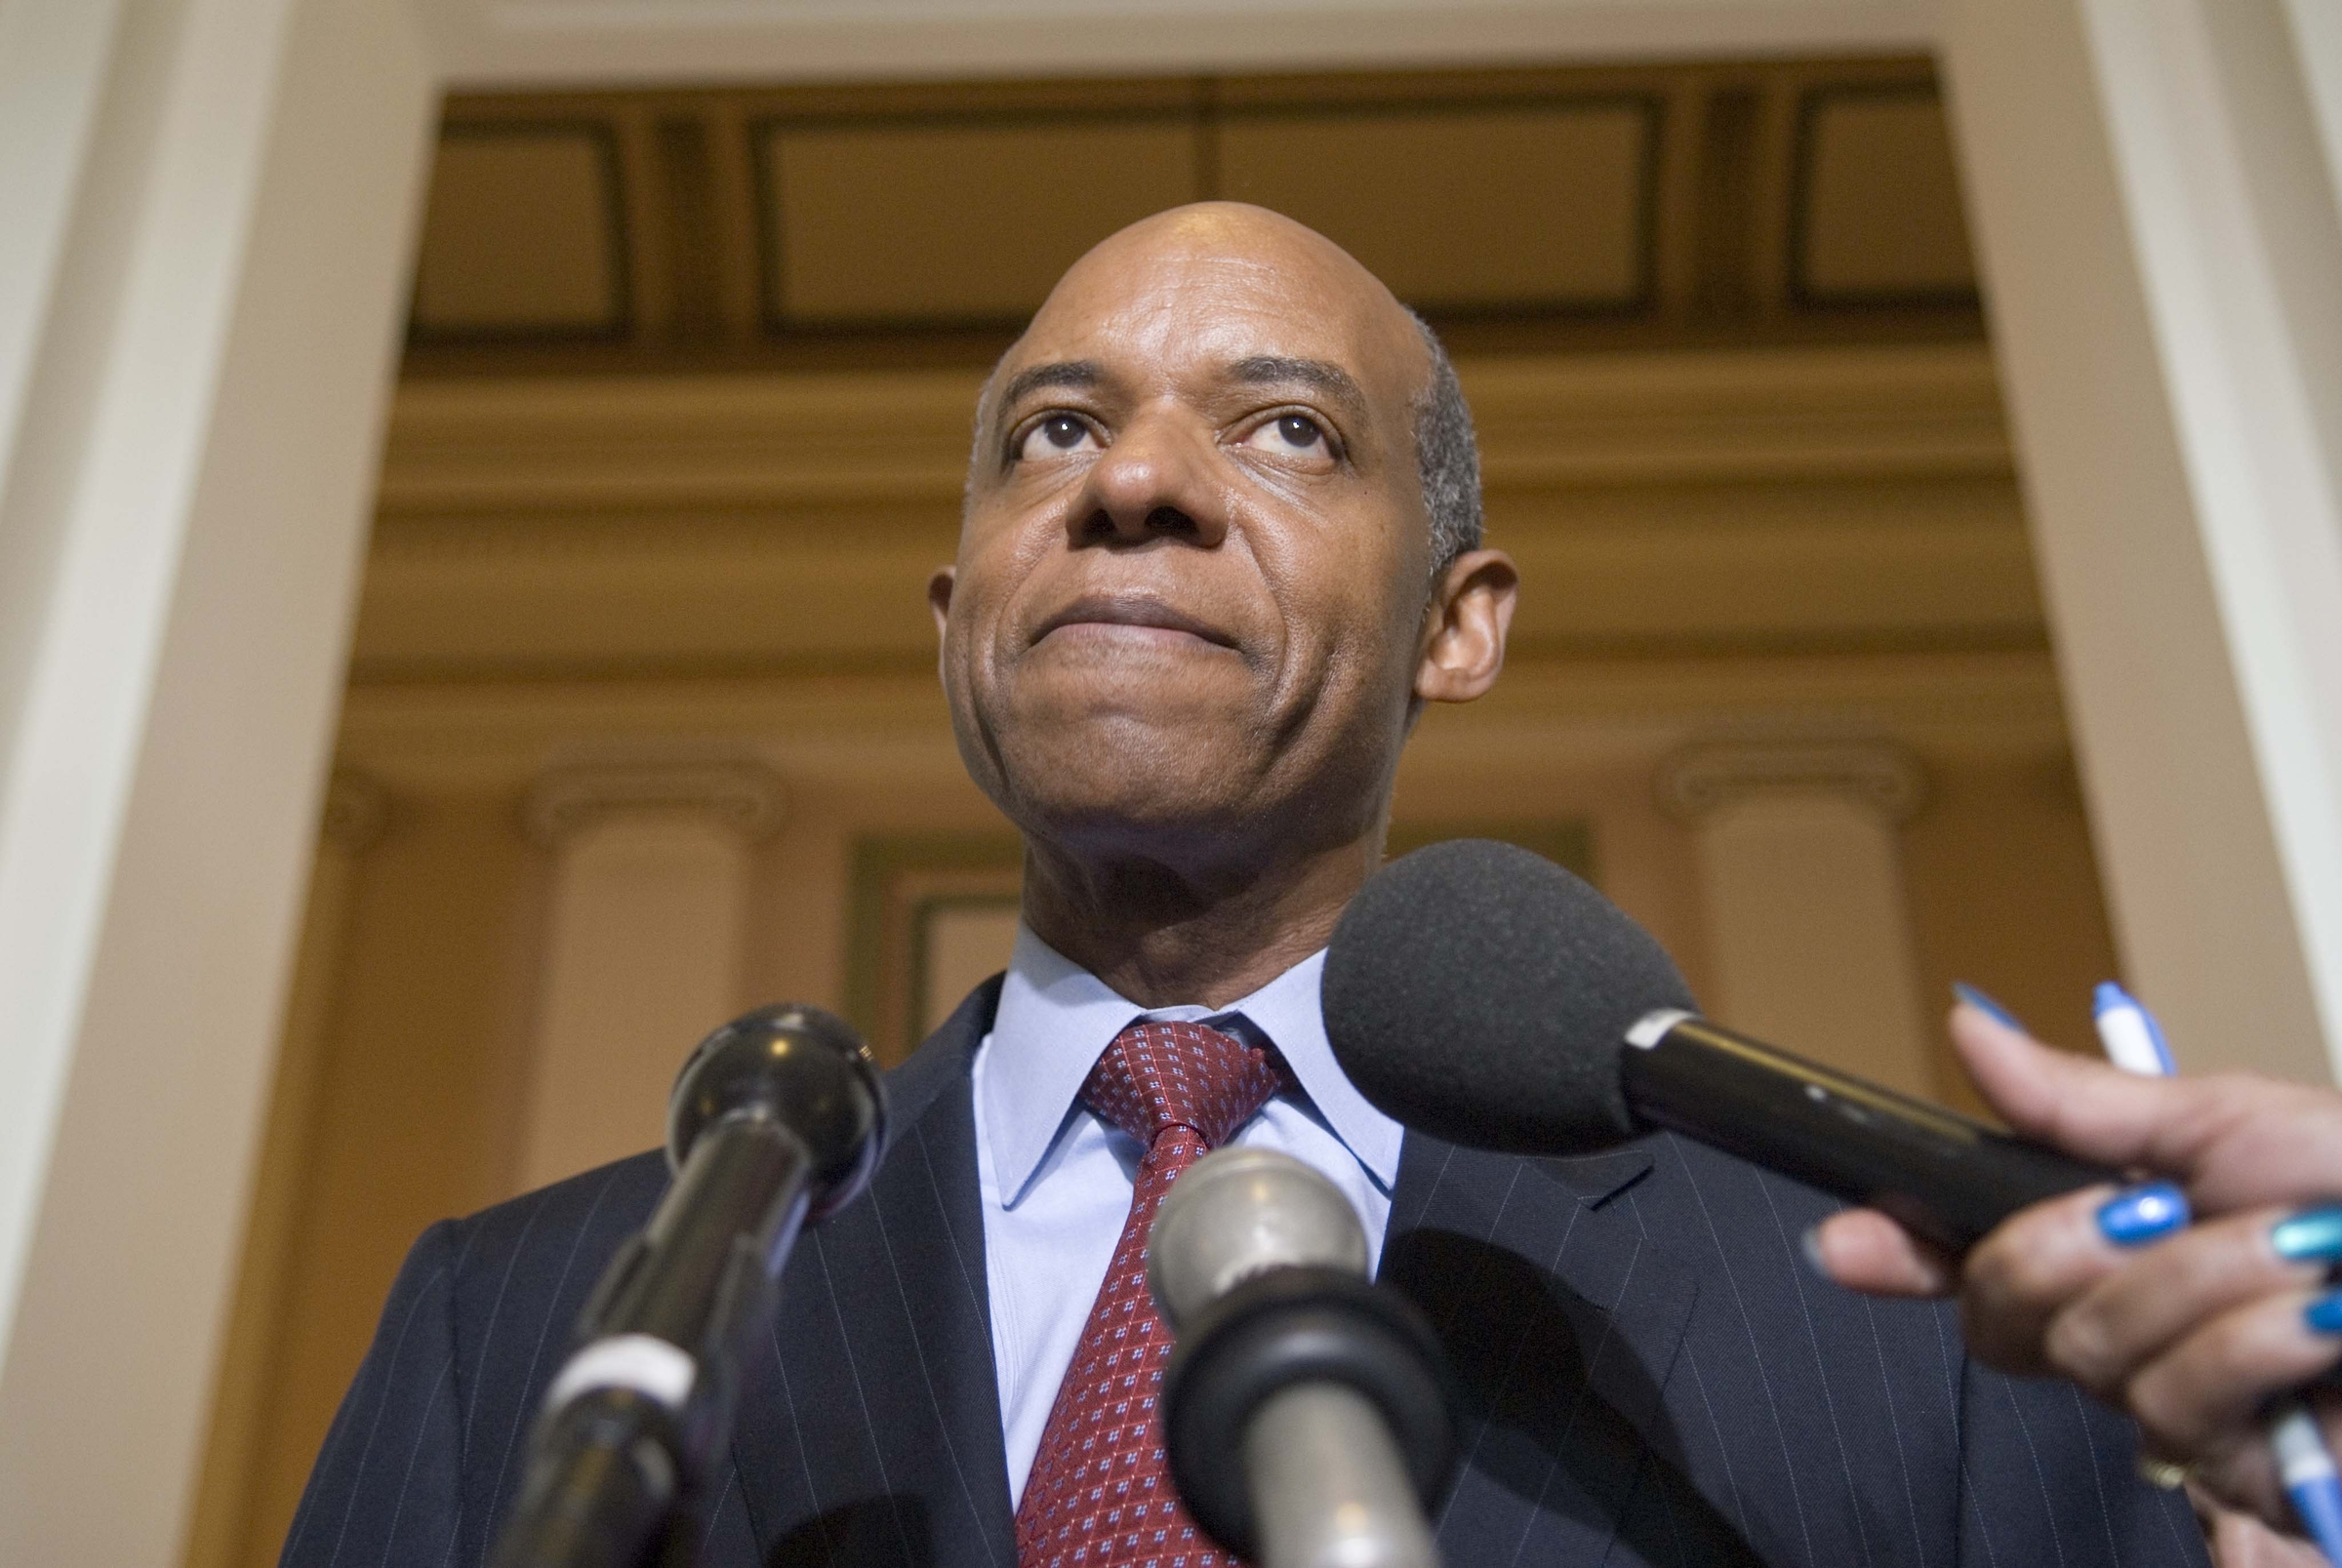 Rep. William J. Jefferson's sentence is believed to be the longest prison term for a member of Congress. (CQ Roll Call File Photo)